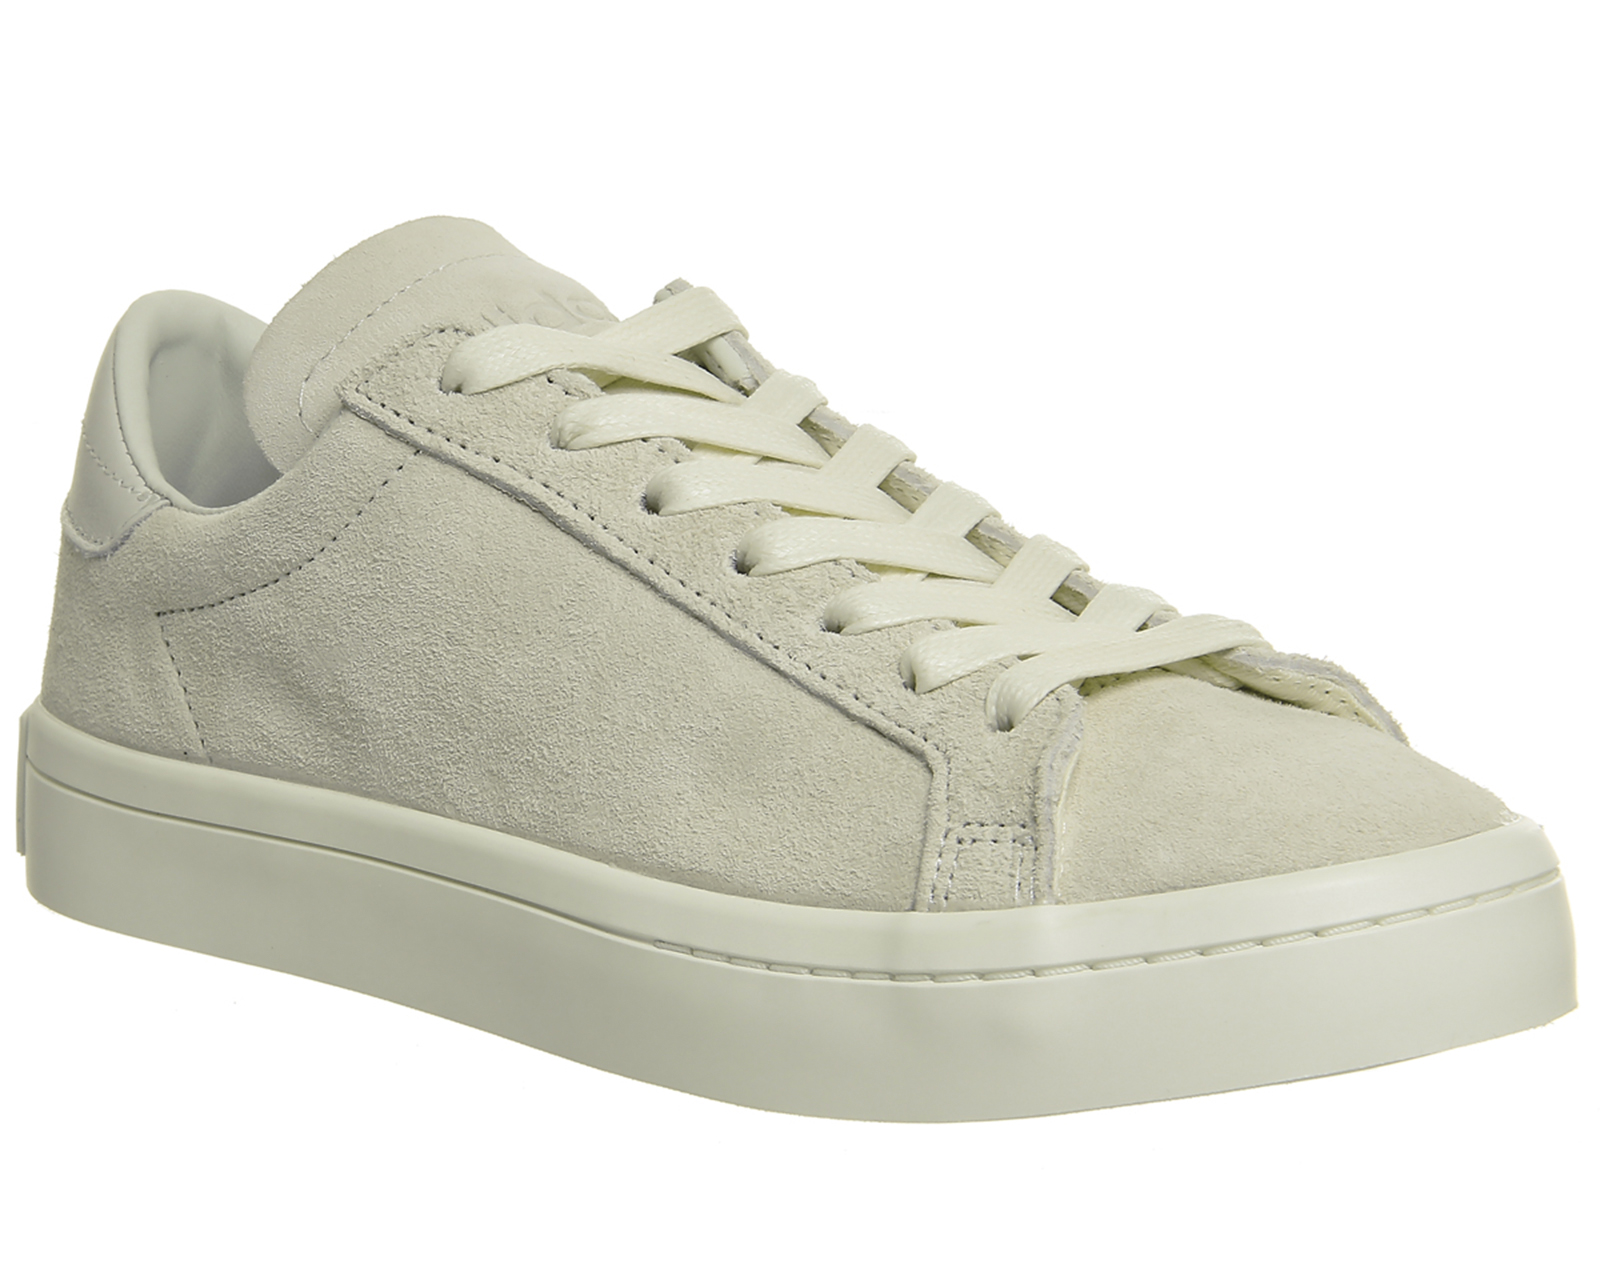 low priced f69fd 12bdc Sentinel Mens Adidas Court Vantage Trainers WHITE MONO SUEDE Trainers Shoes